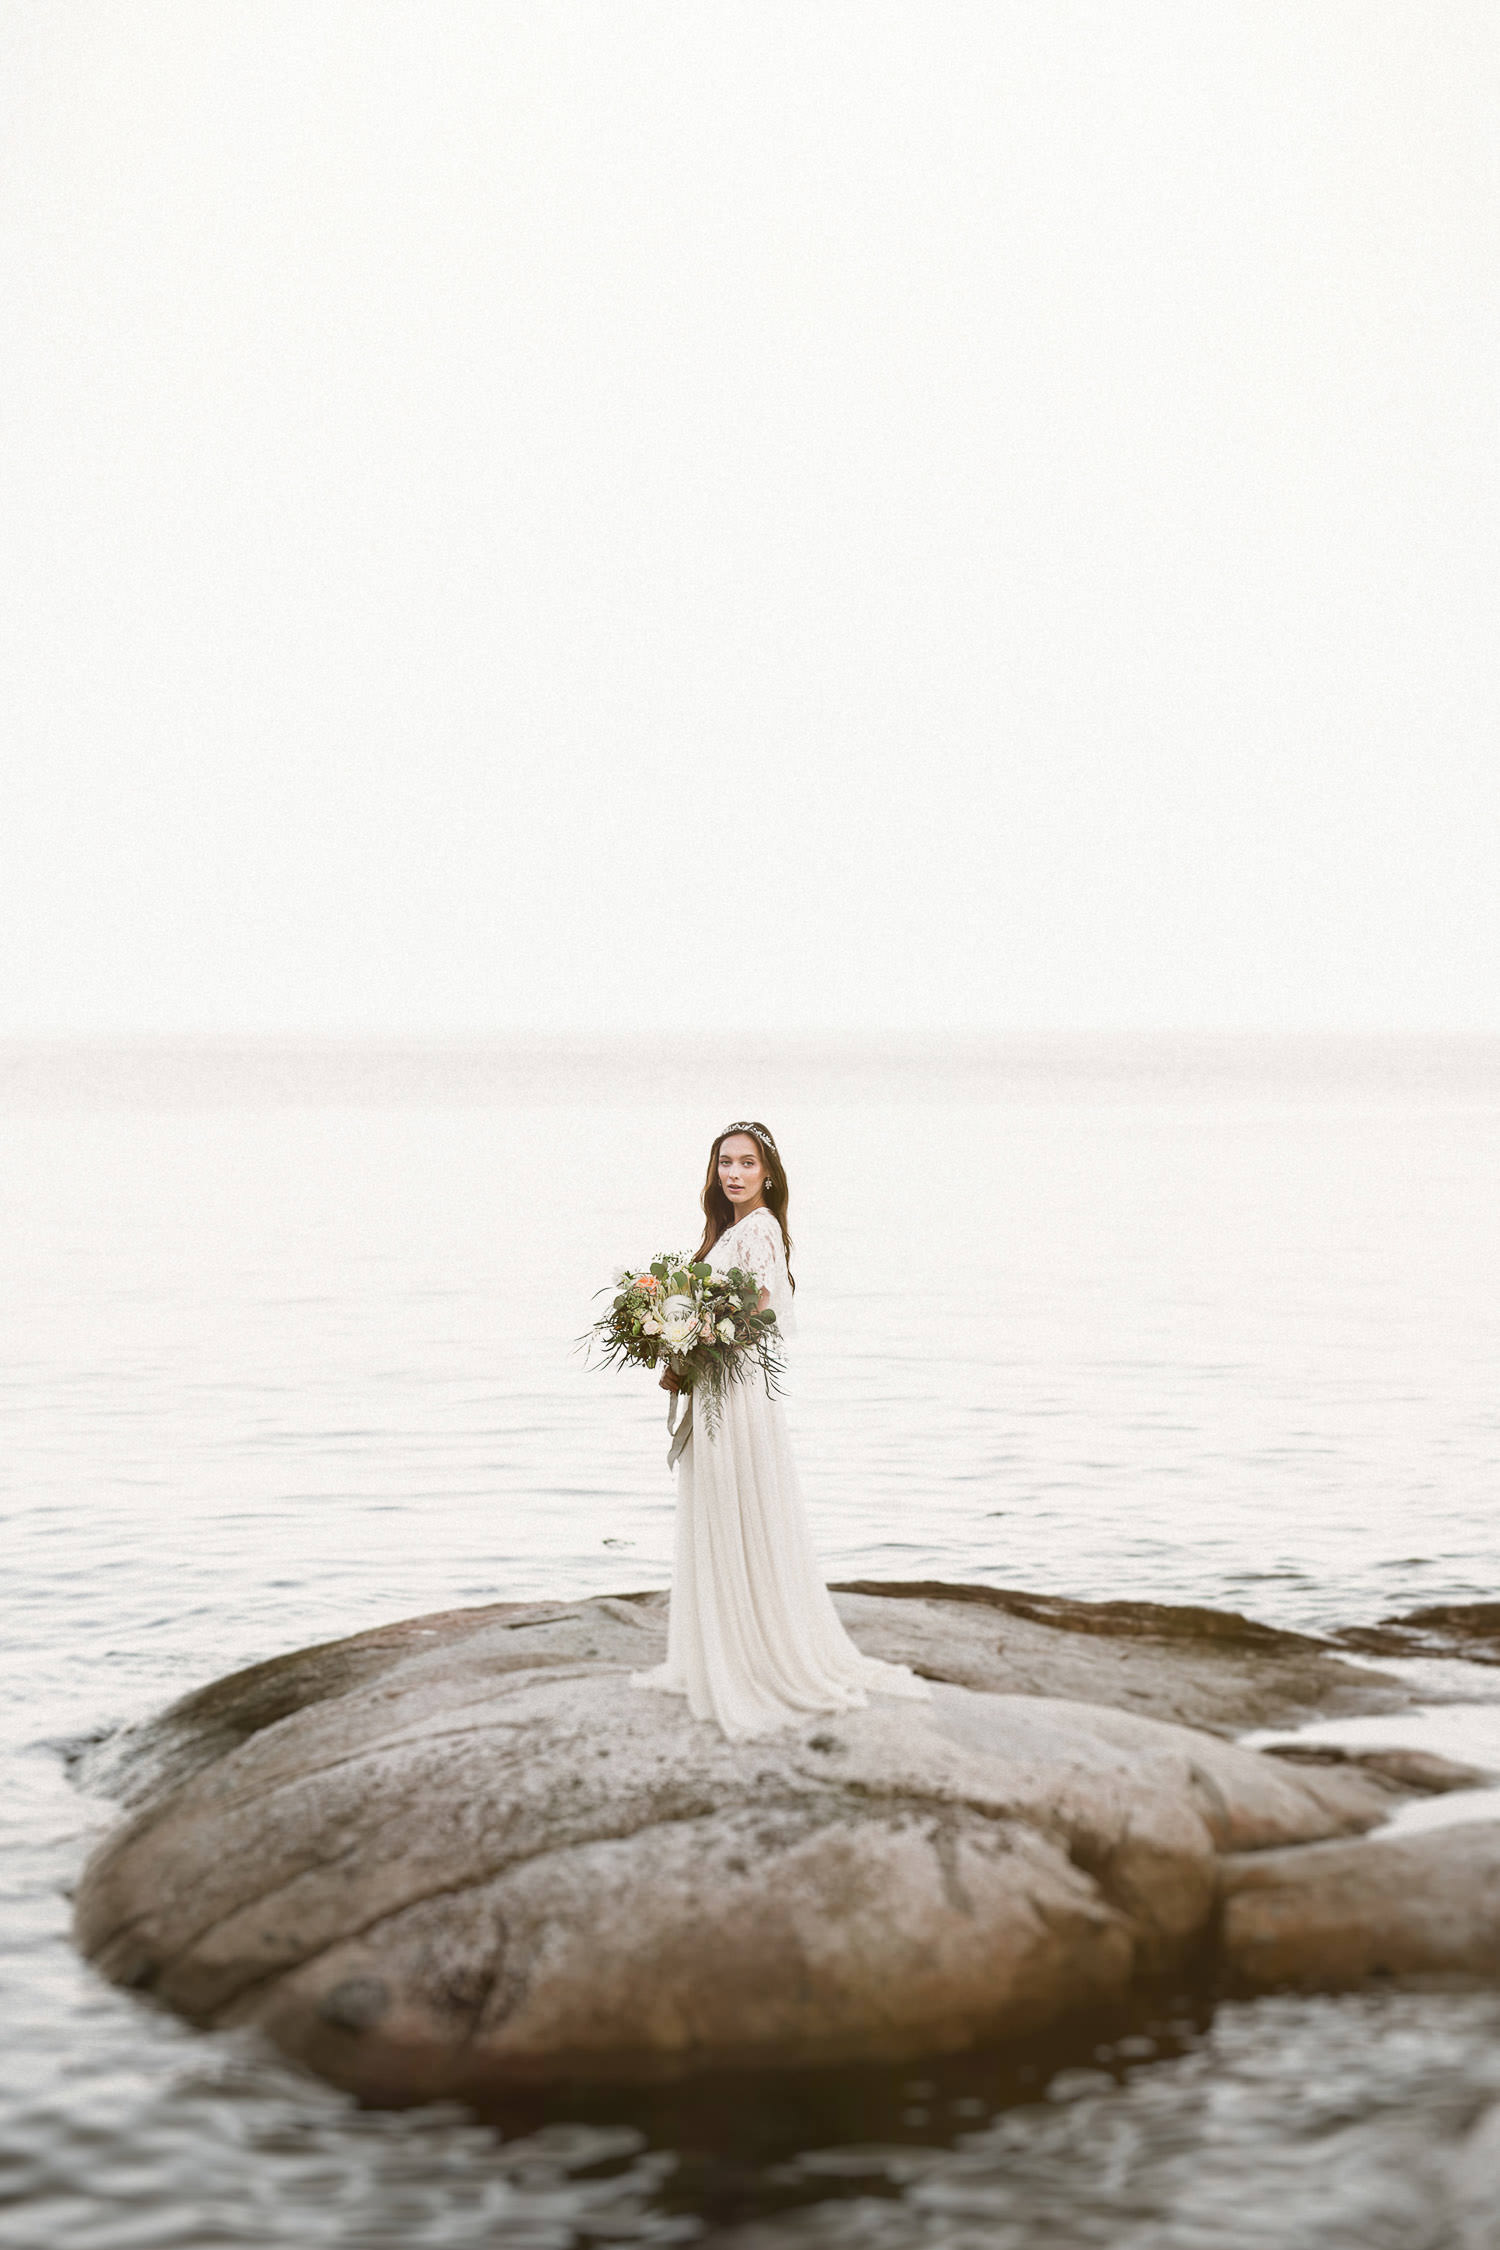 Ethereal boho bride - seaside wedding inspiration | Photo: Camilla Anchisi - Amalfi Coast wedding photographer